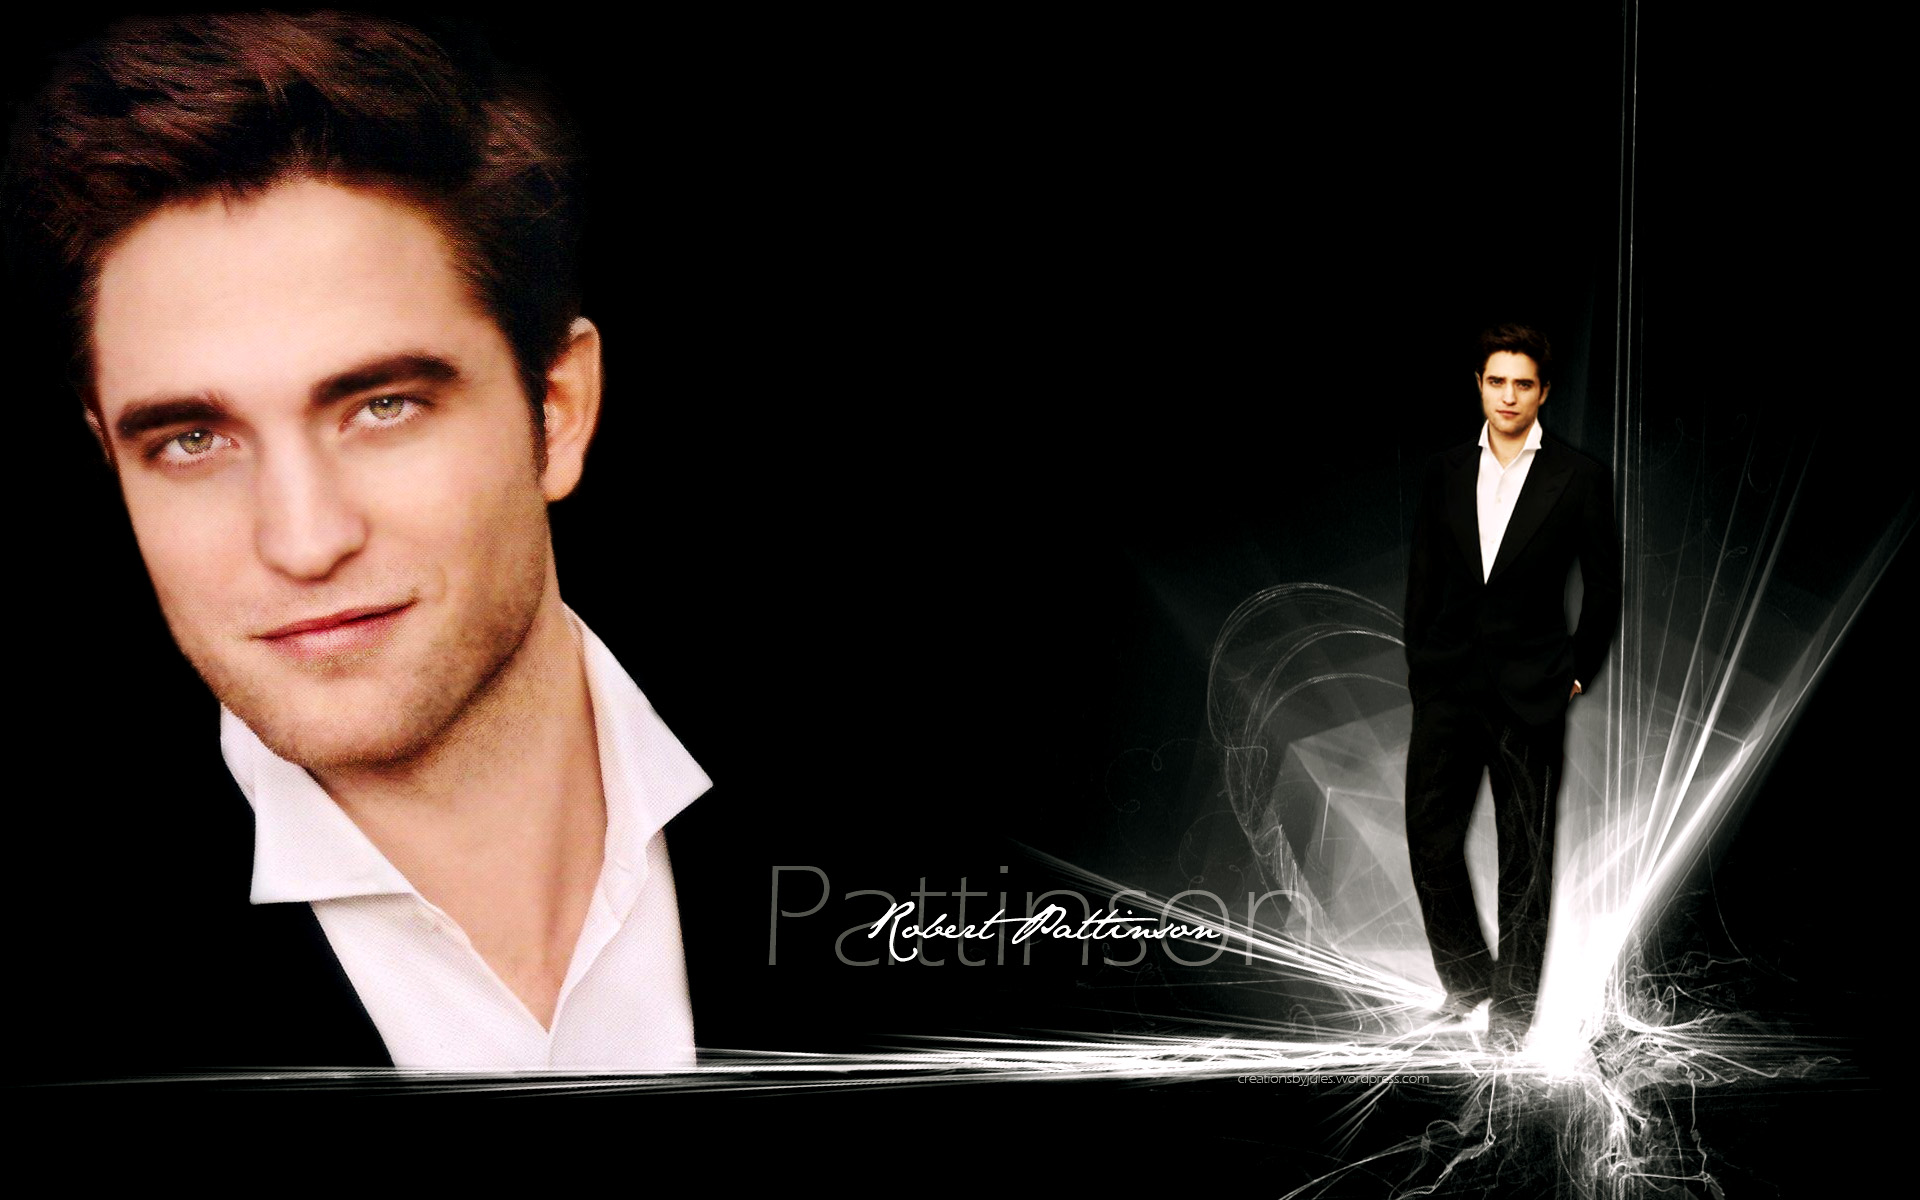 Robert Pattinson Wallpapers